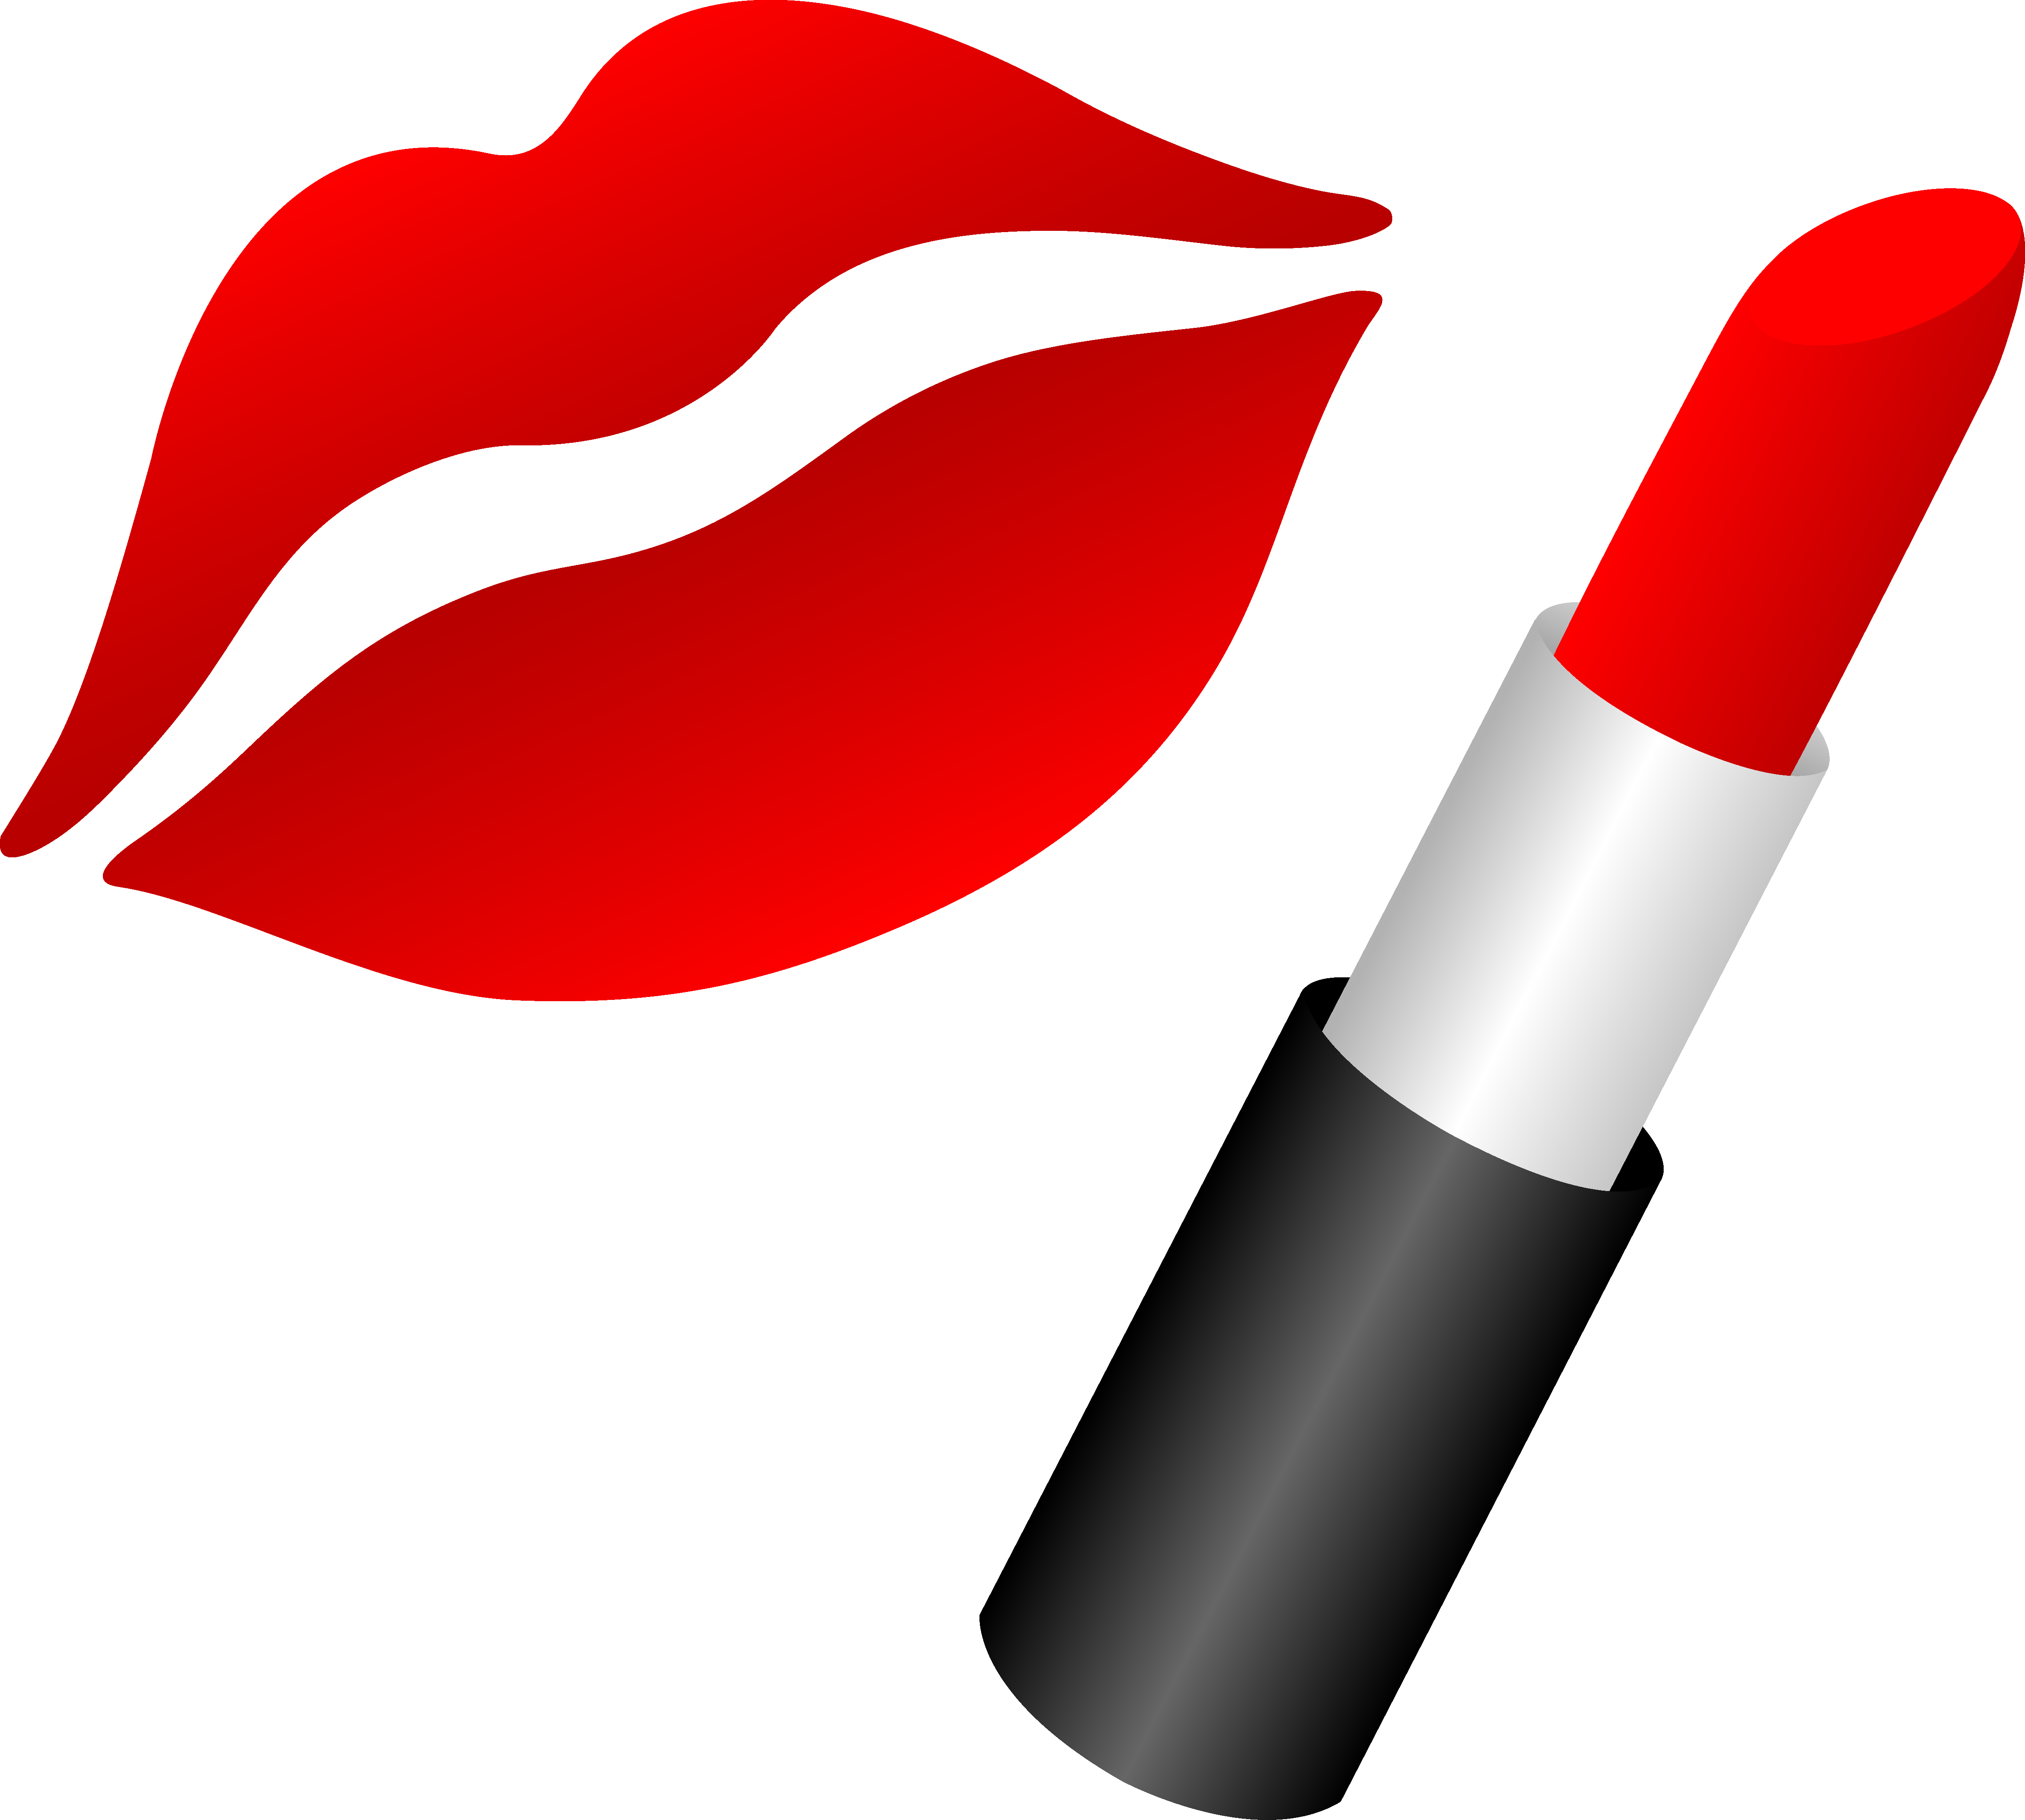 Putting on makeup in the car clipart picture black and white library Lips With Red Lipstick - Free Clip Art | Red Lips | Lip stencil ... picture black and white library